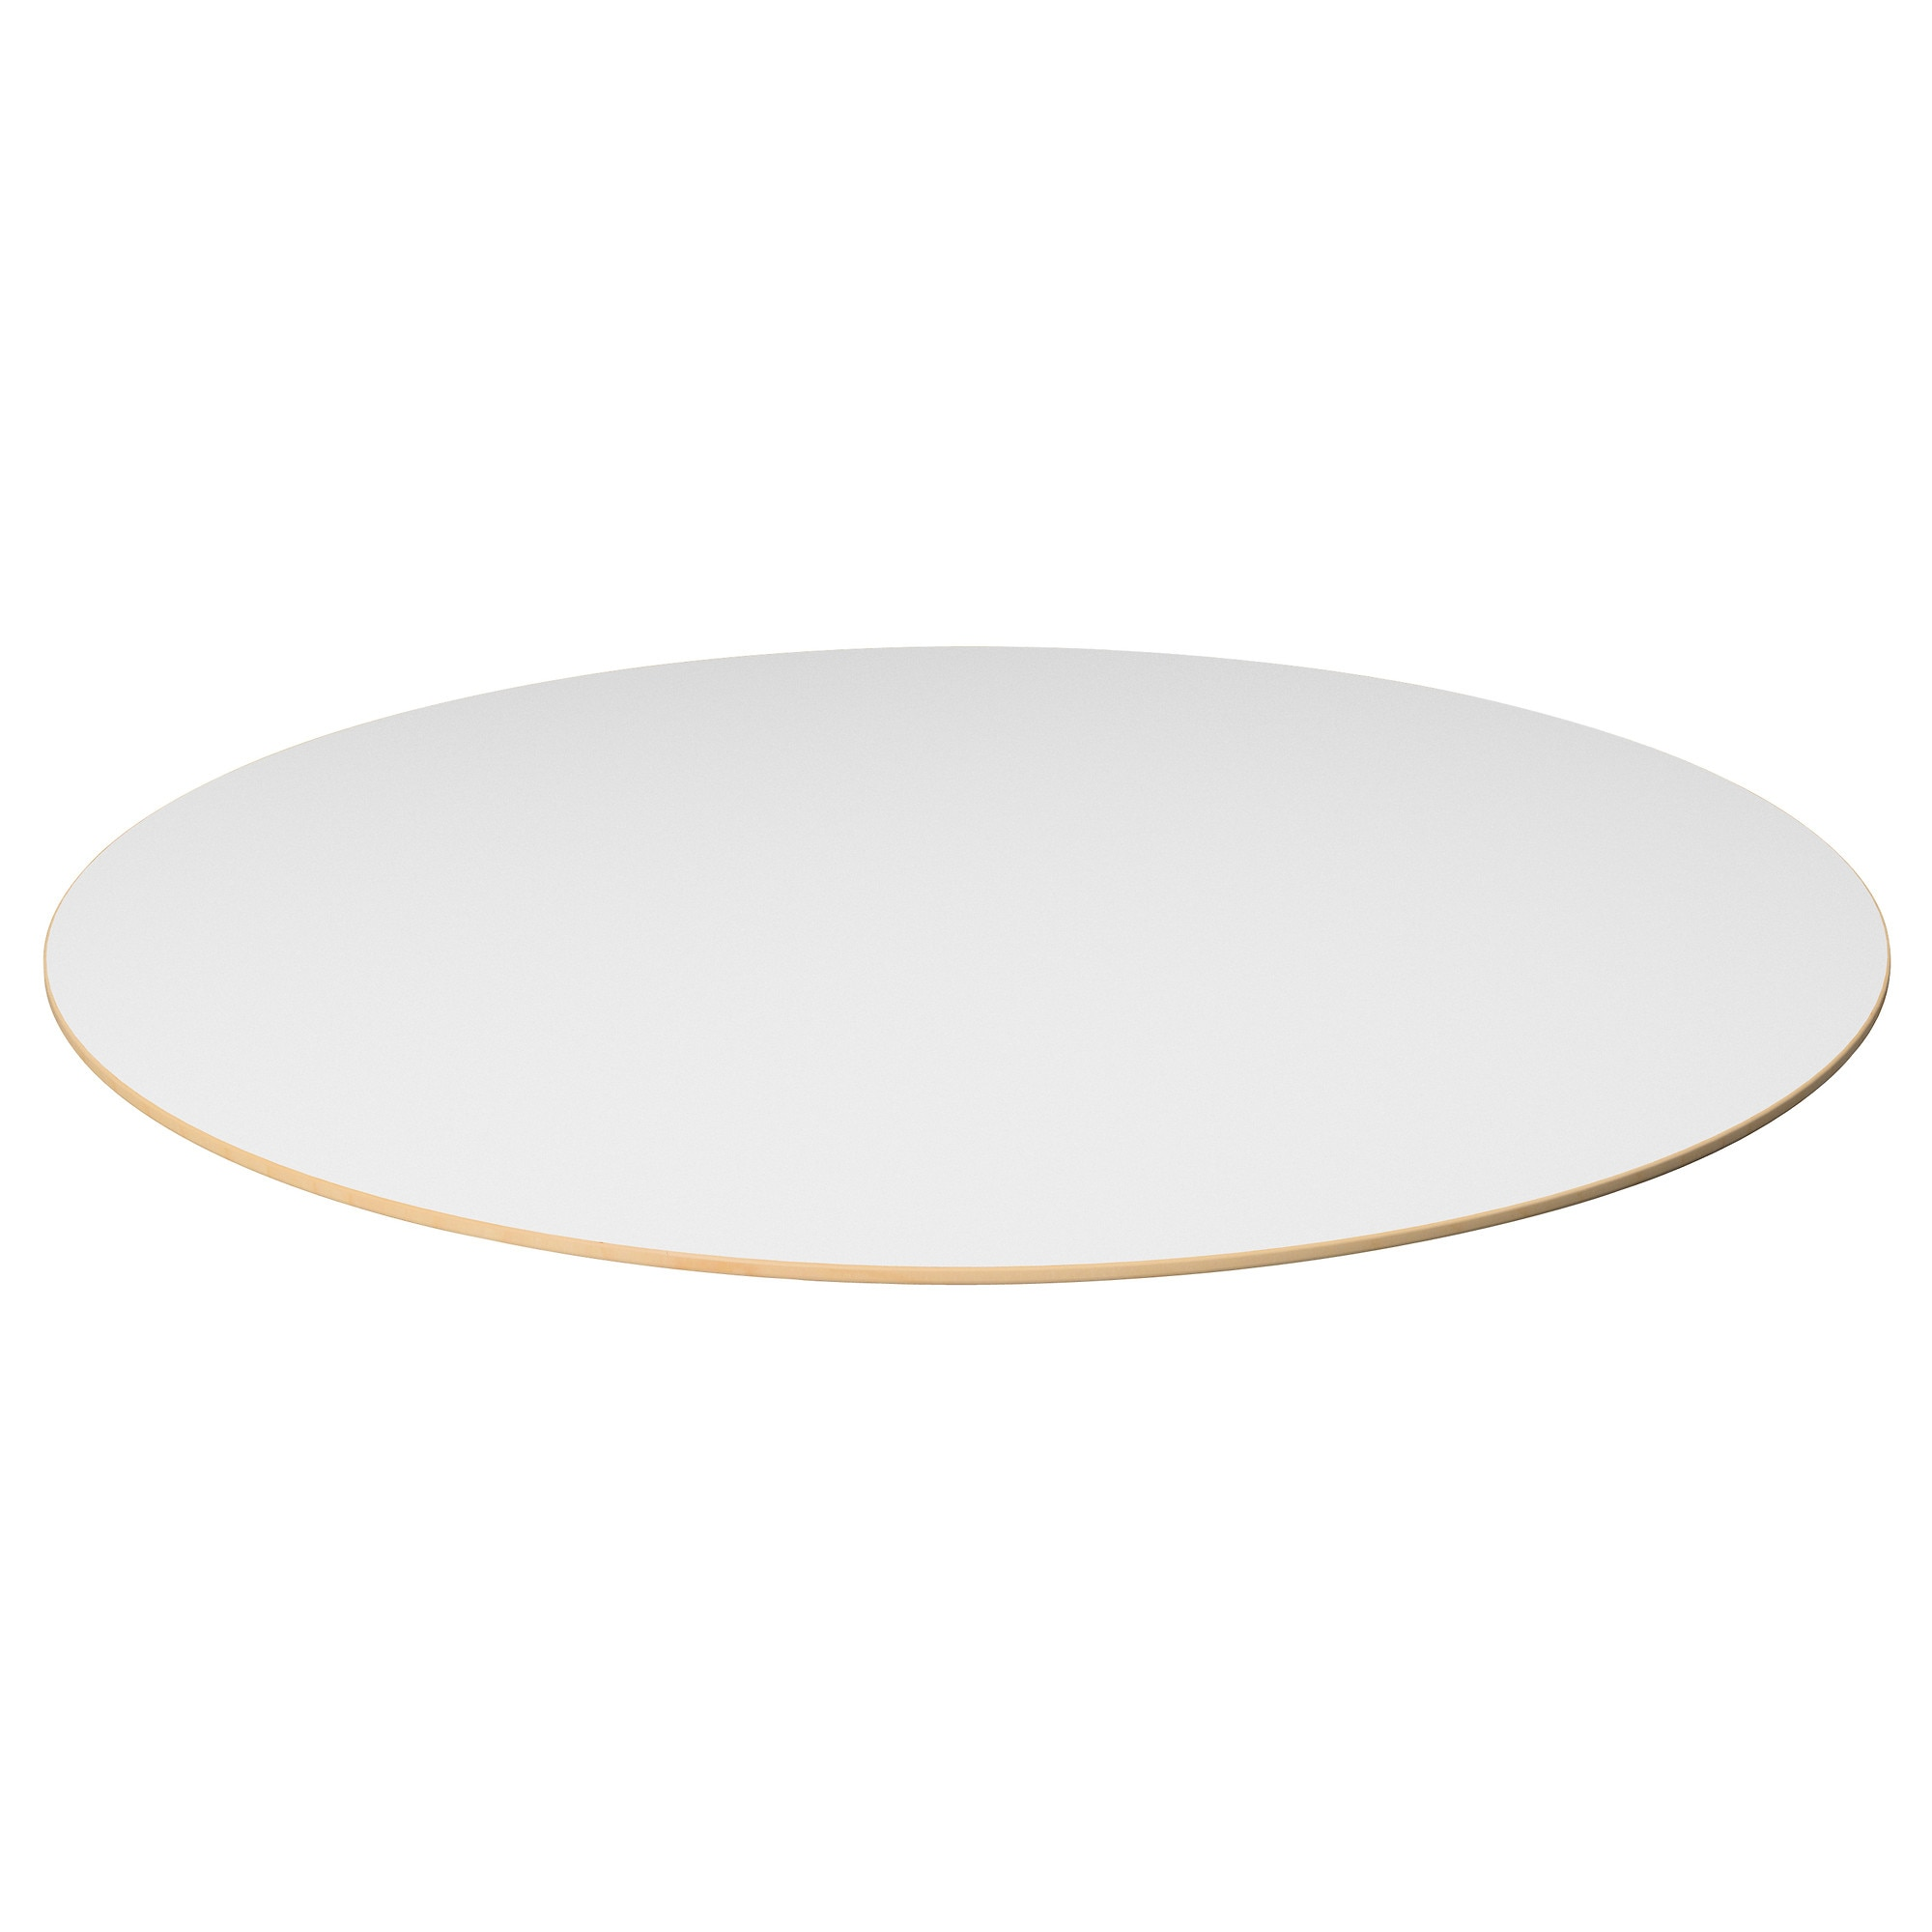 Table ronde plateau verre ikea - Table ronde en verre ikea ...